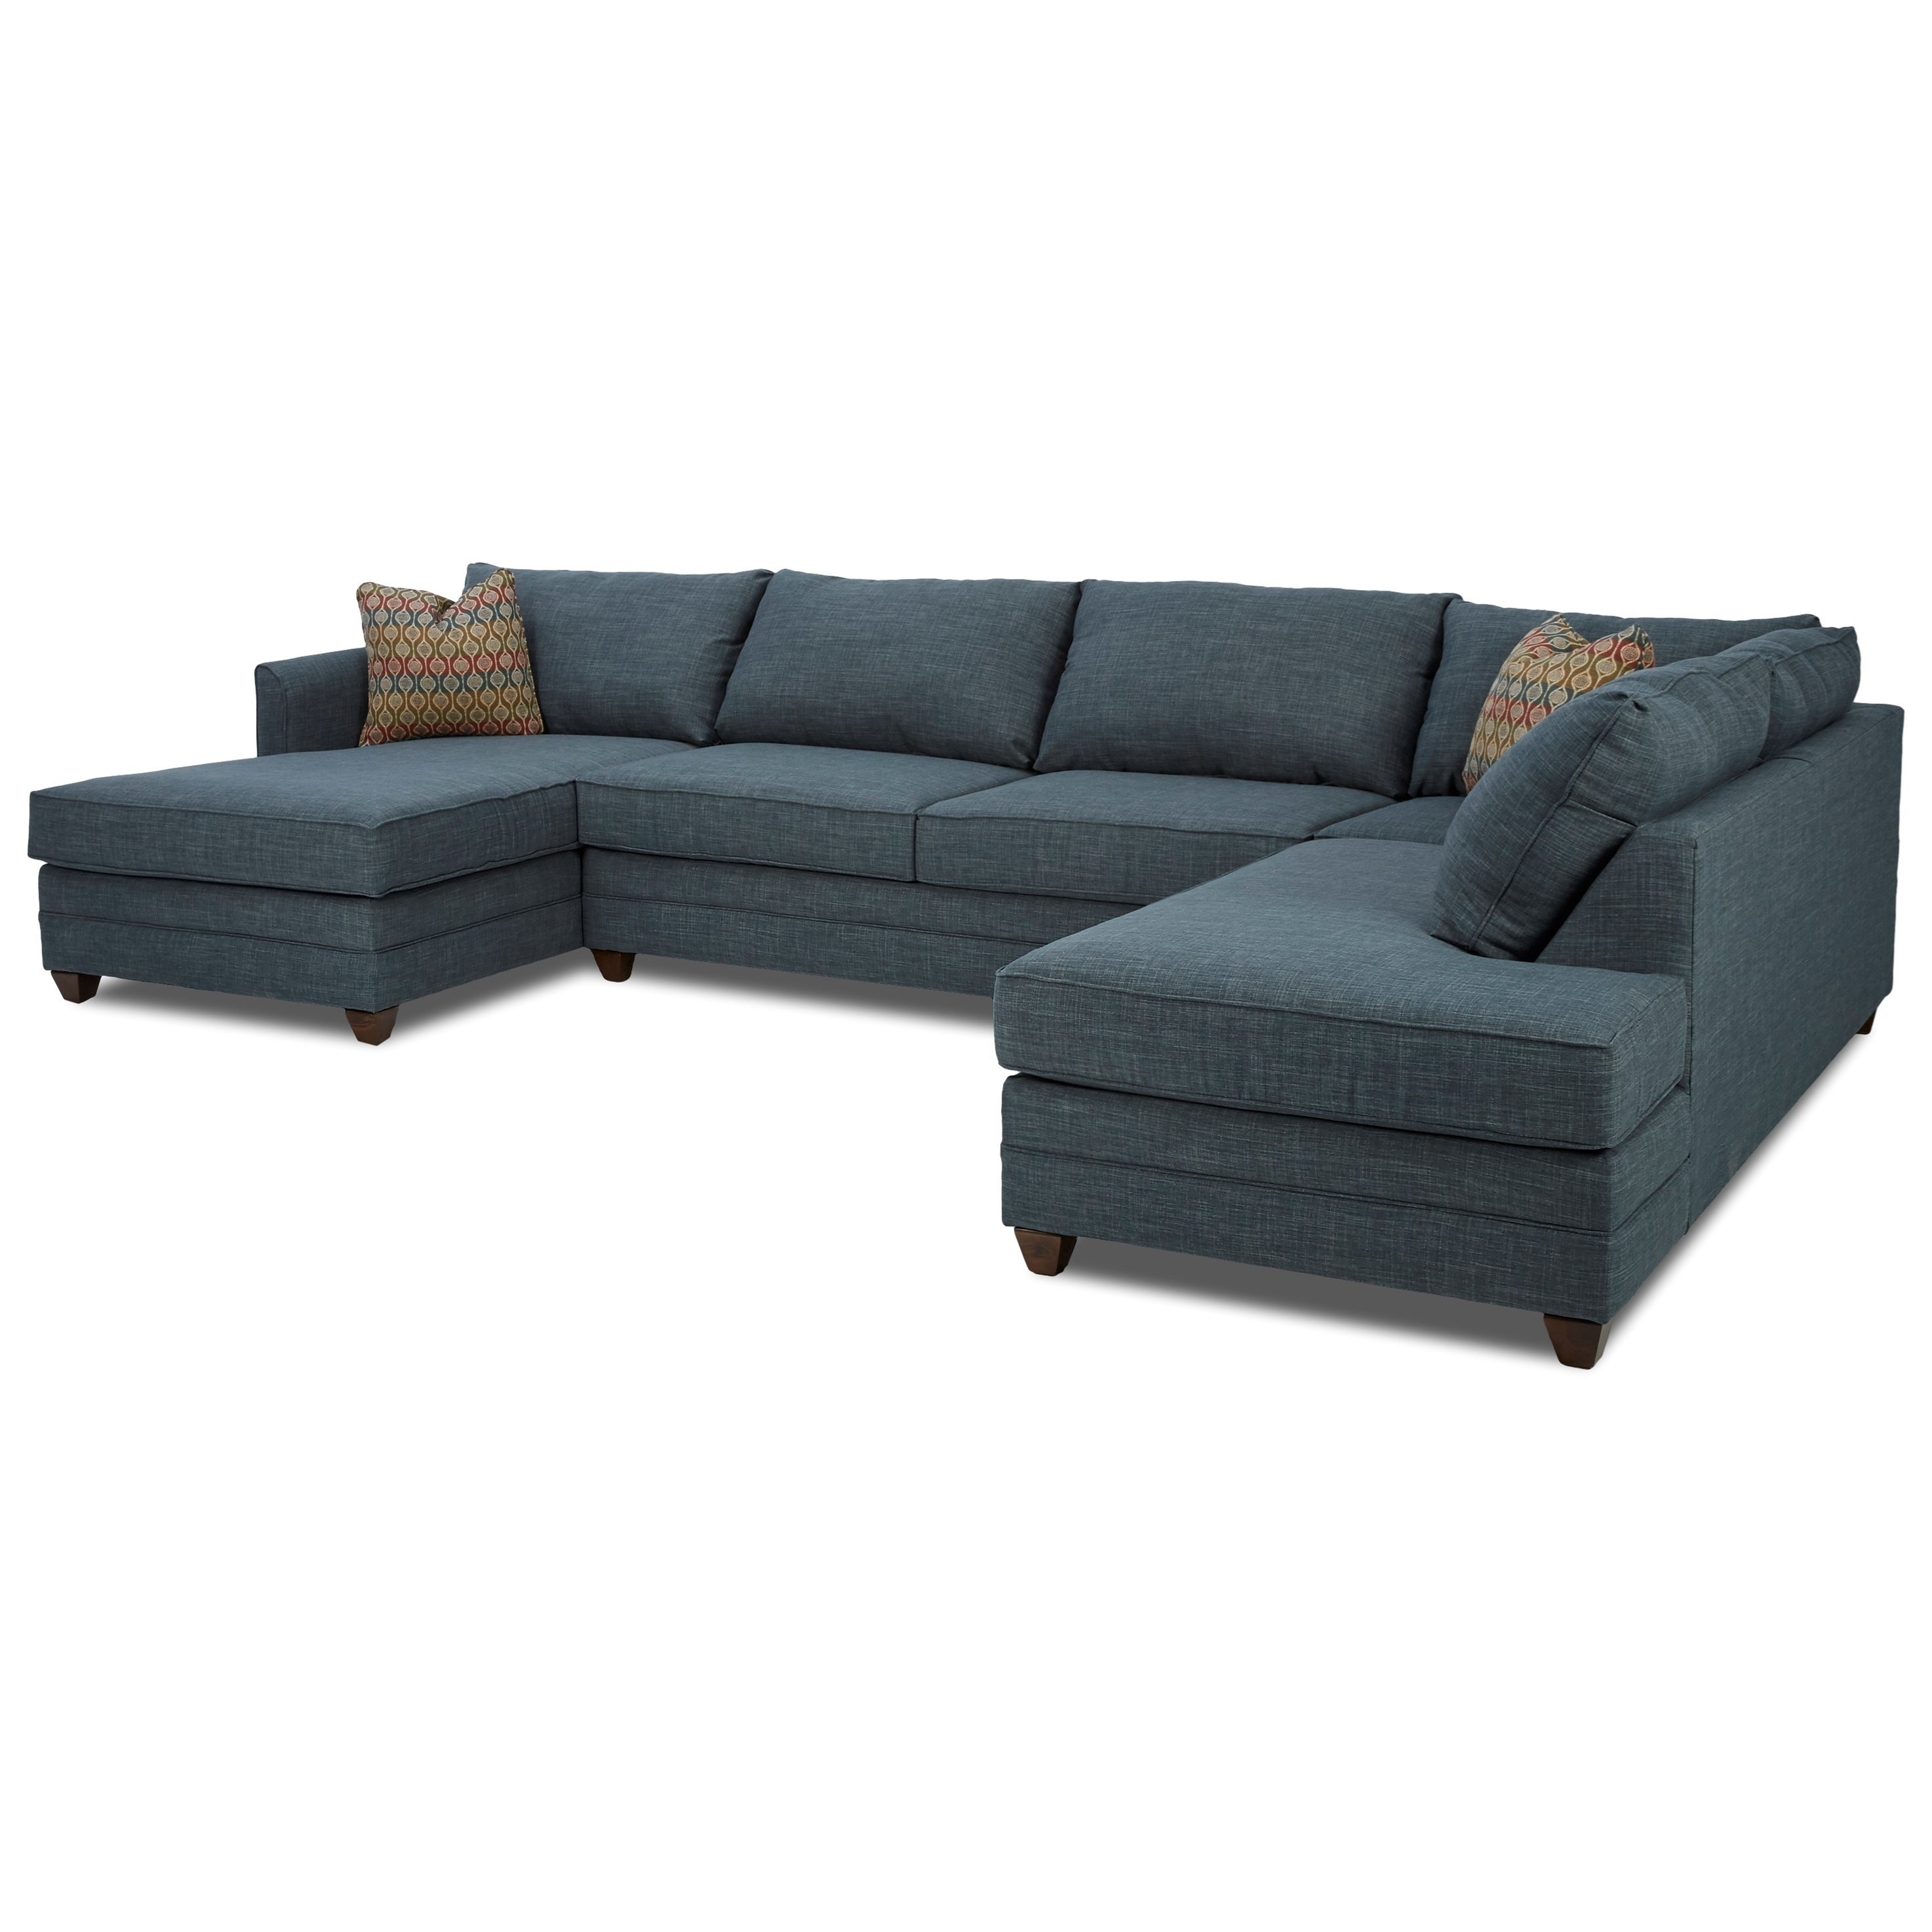 Klaussner tilly three piece sectional sofa with laf chaise for 3pc sectional with chaise